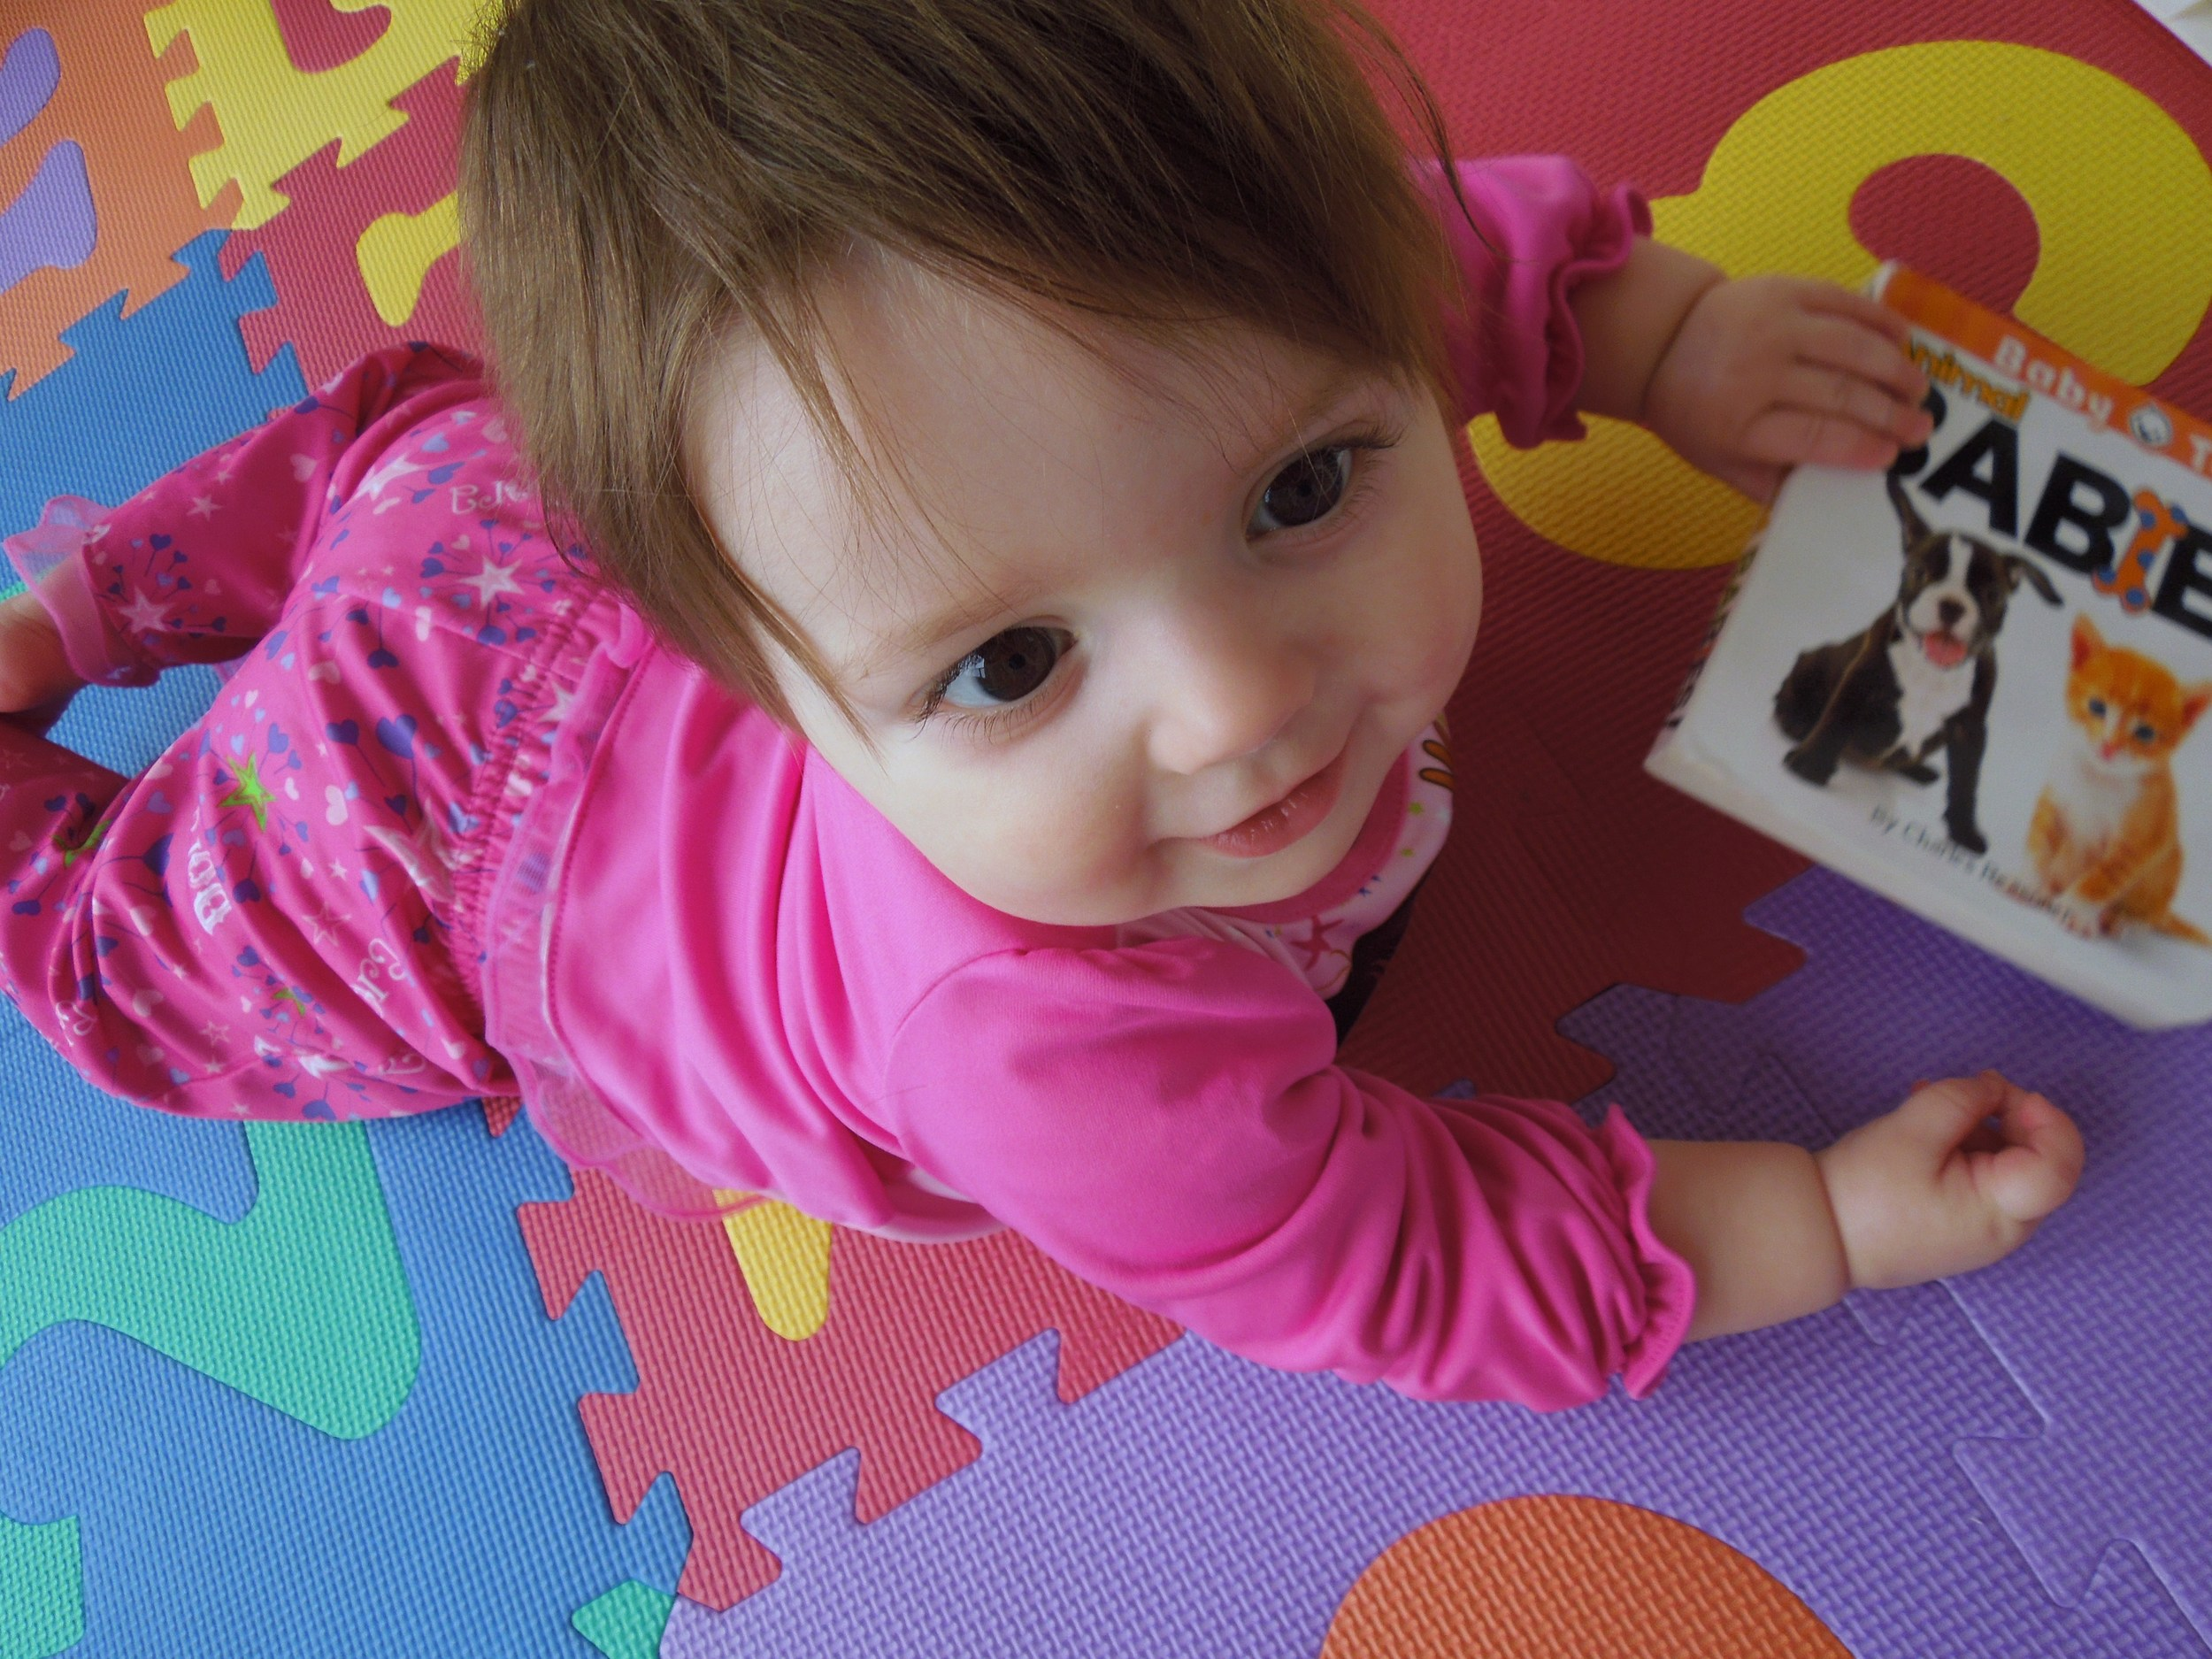 10 Months Old with board book